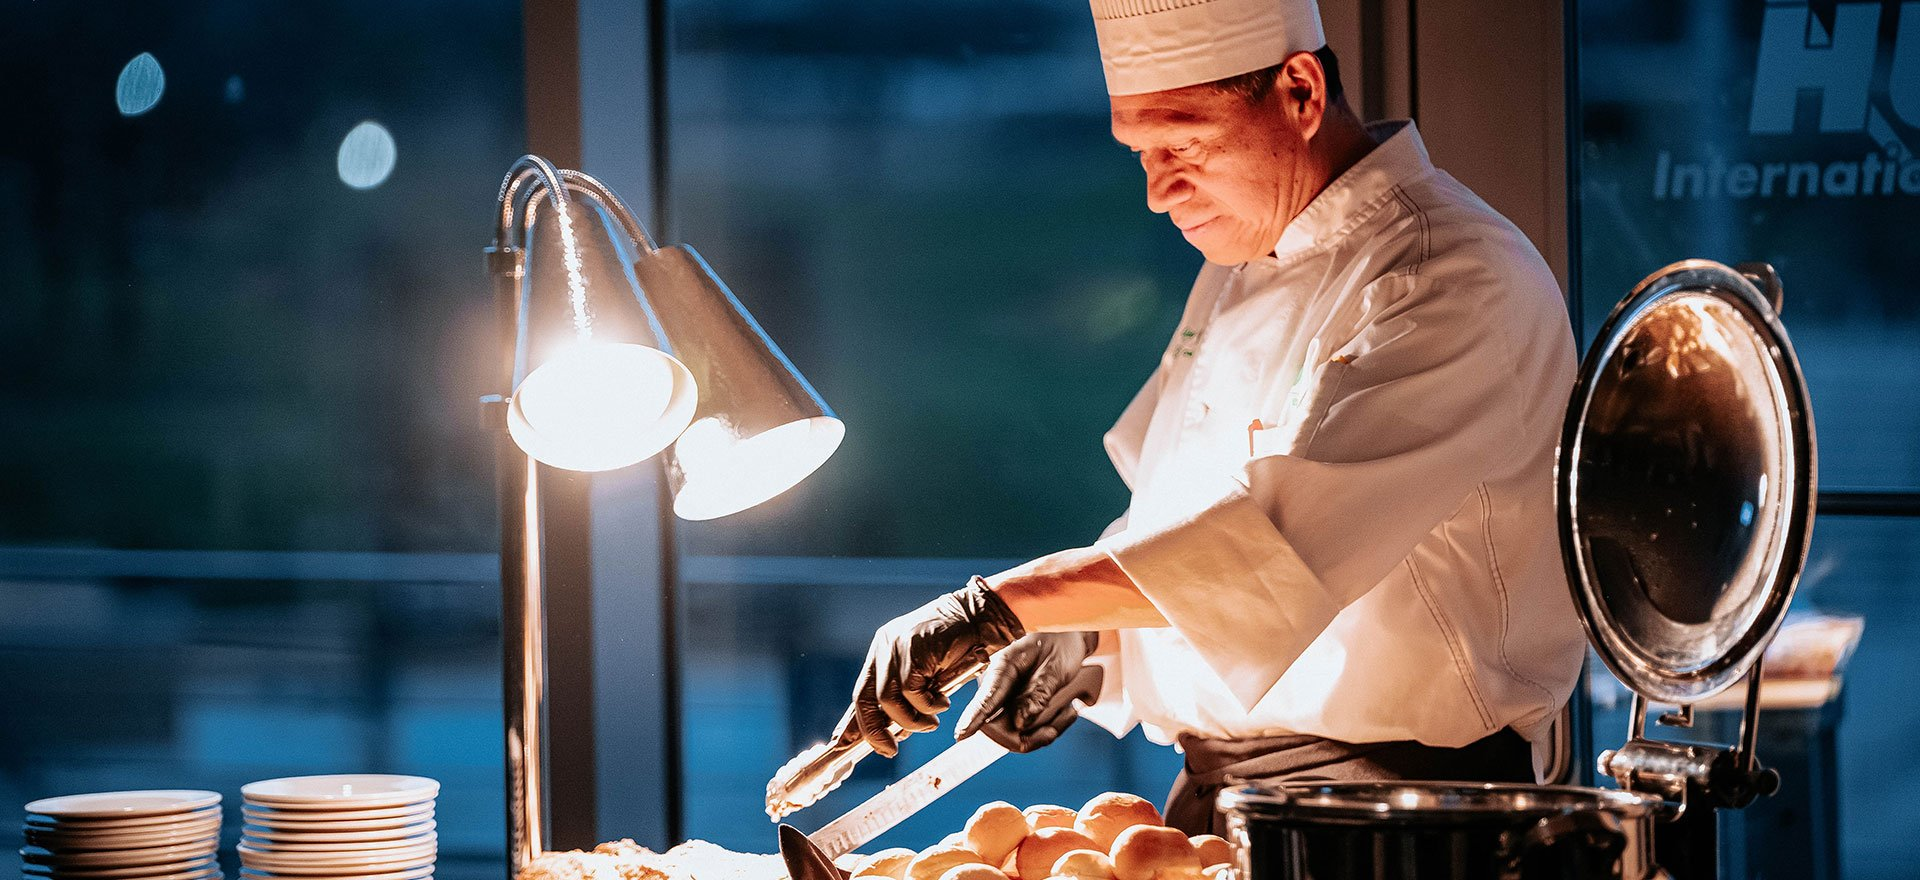 Artisan chef carves meat at a catering event